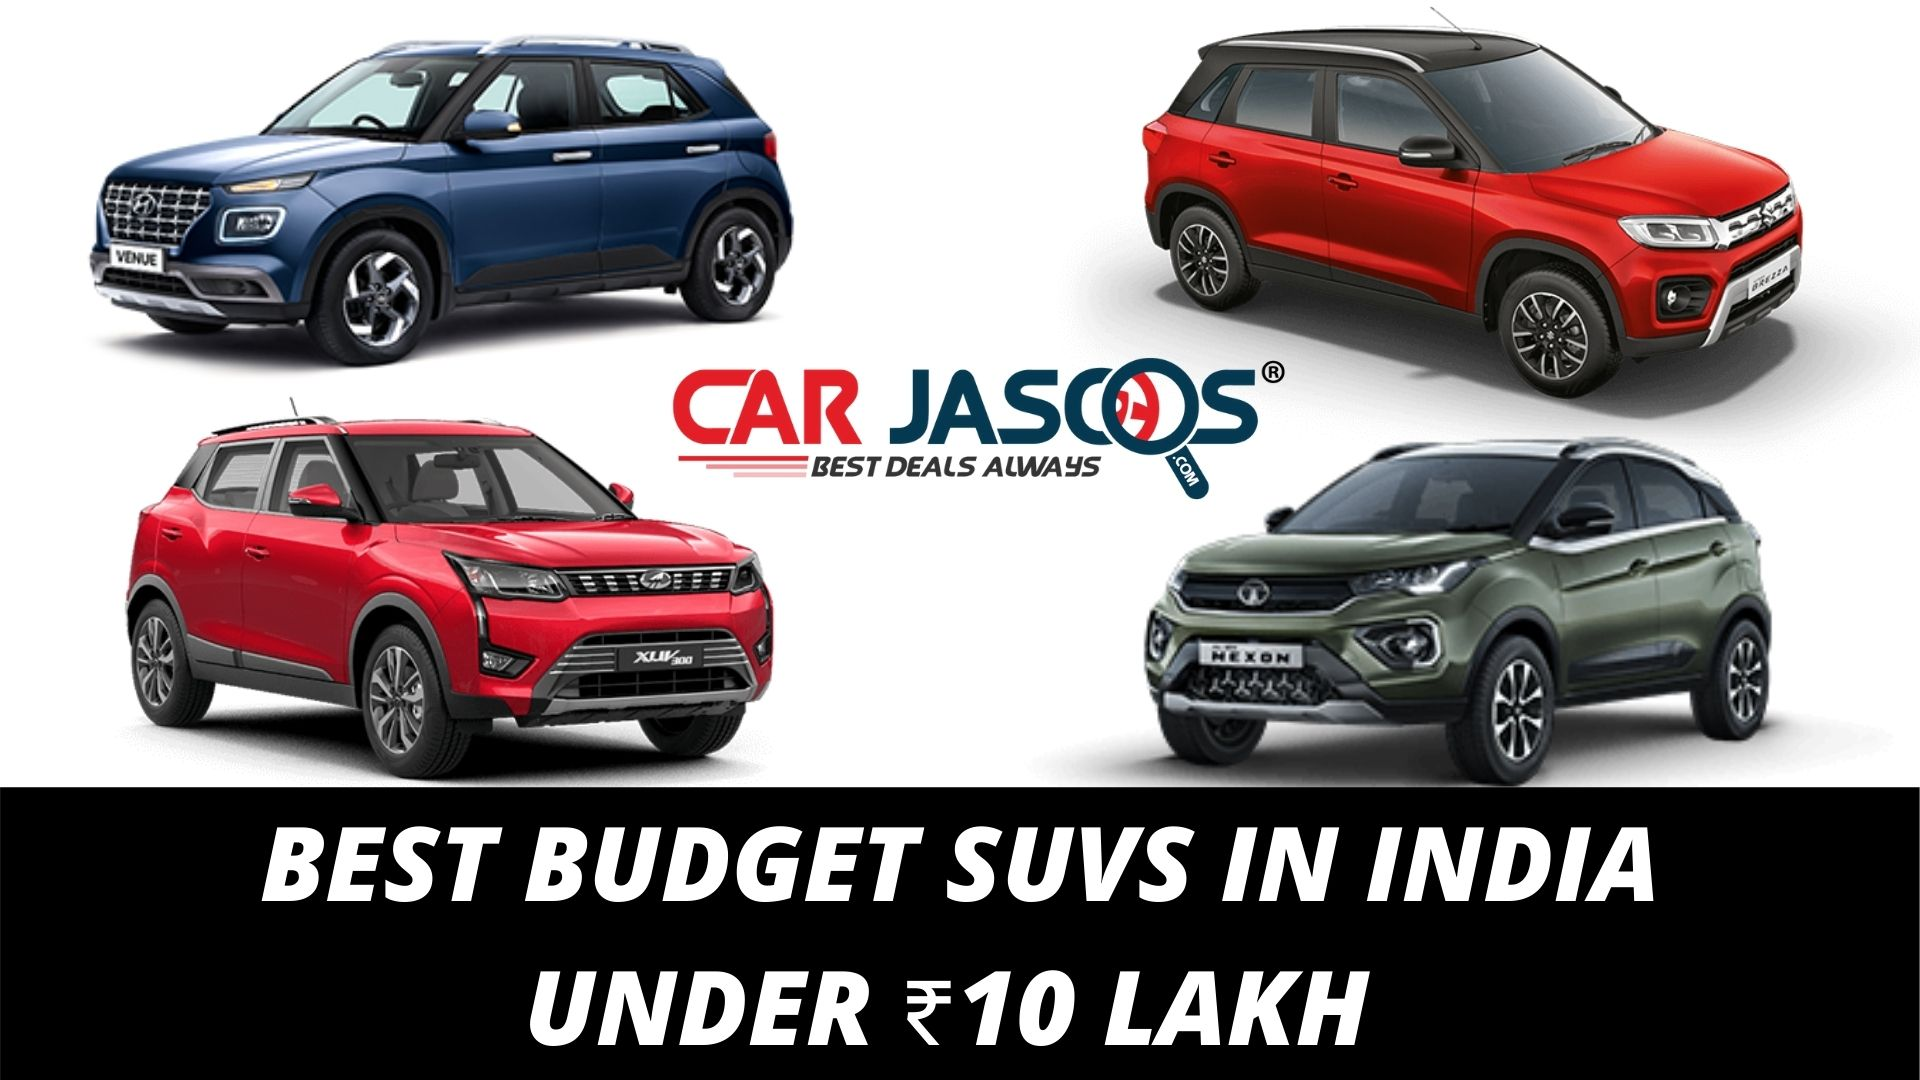 BEST BUDGET SUVS IN INDIA UNDER ₹10 LAKH